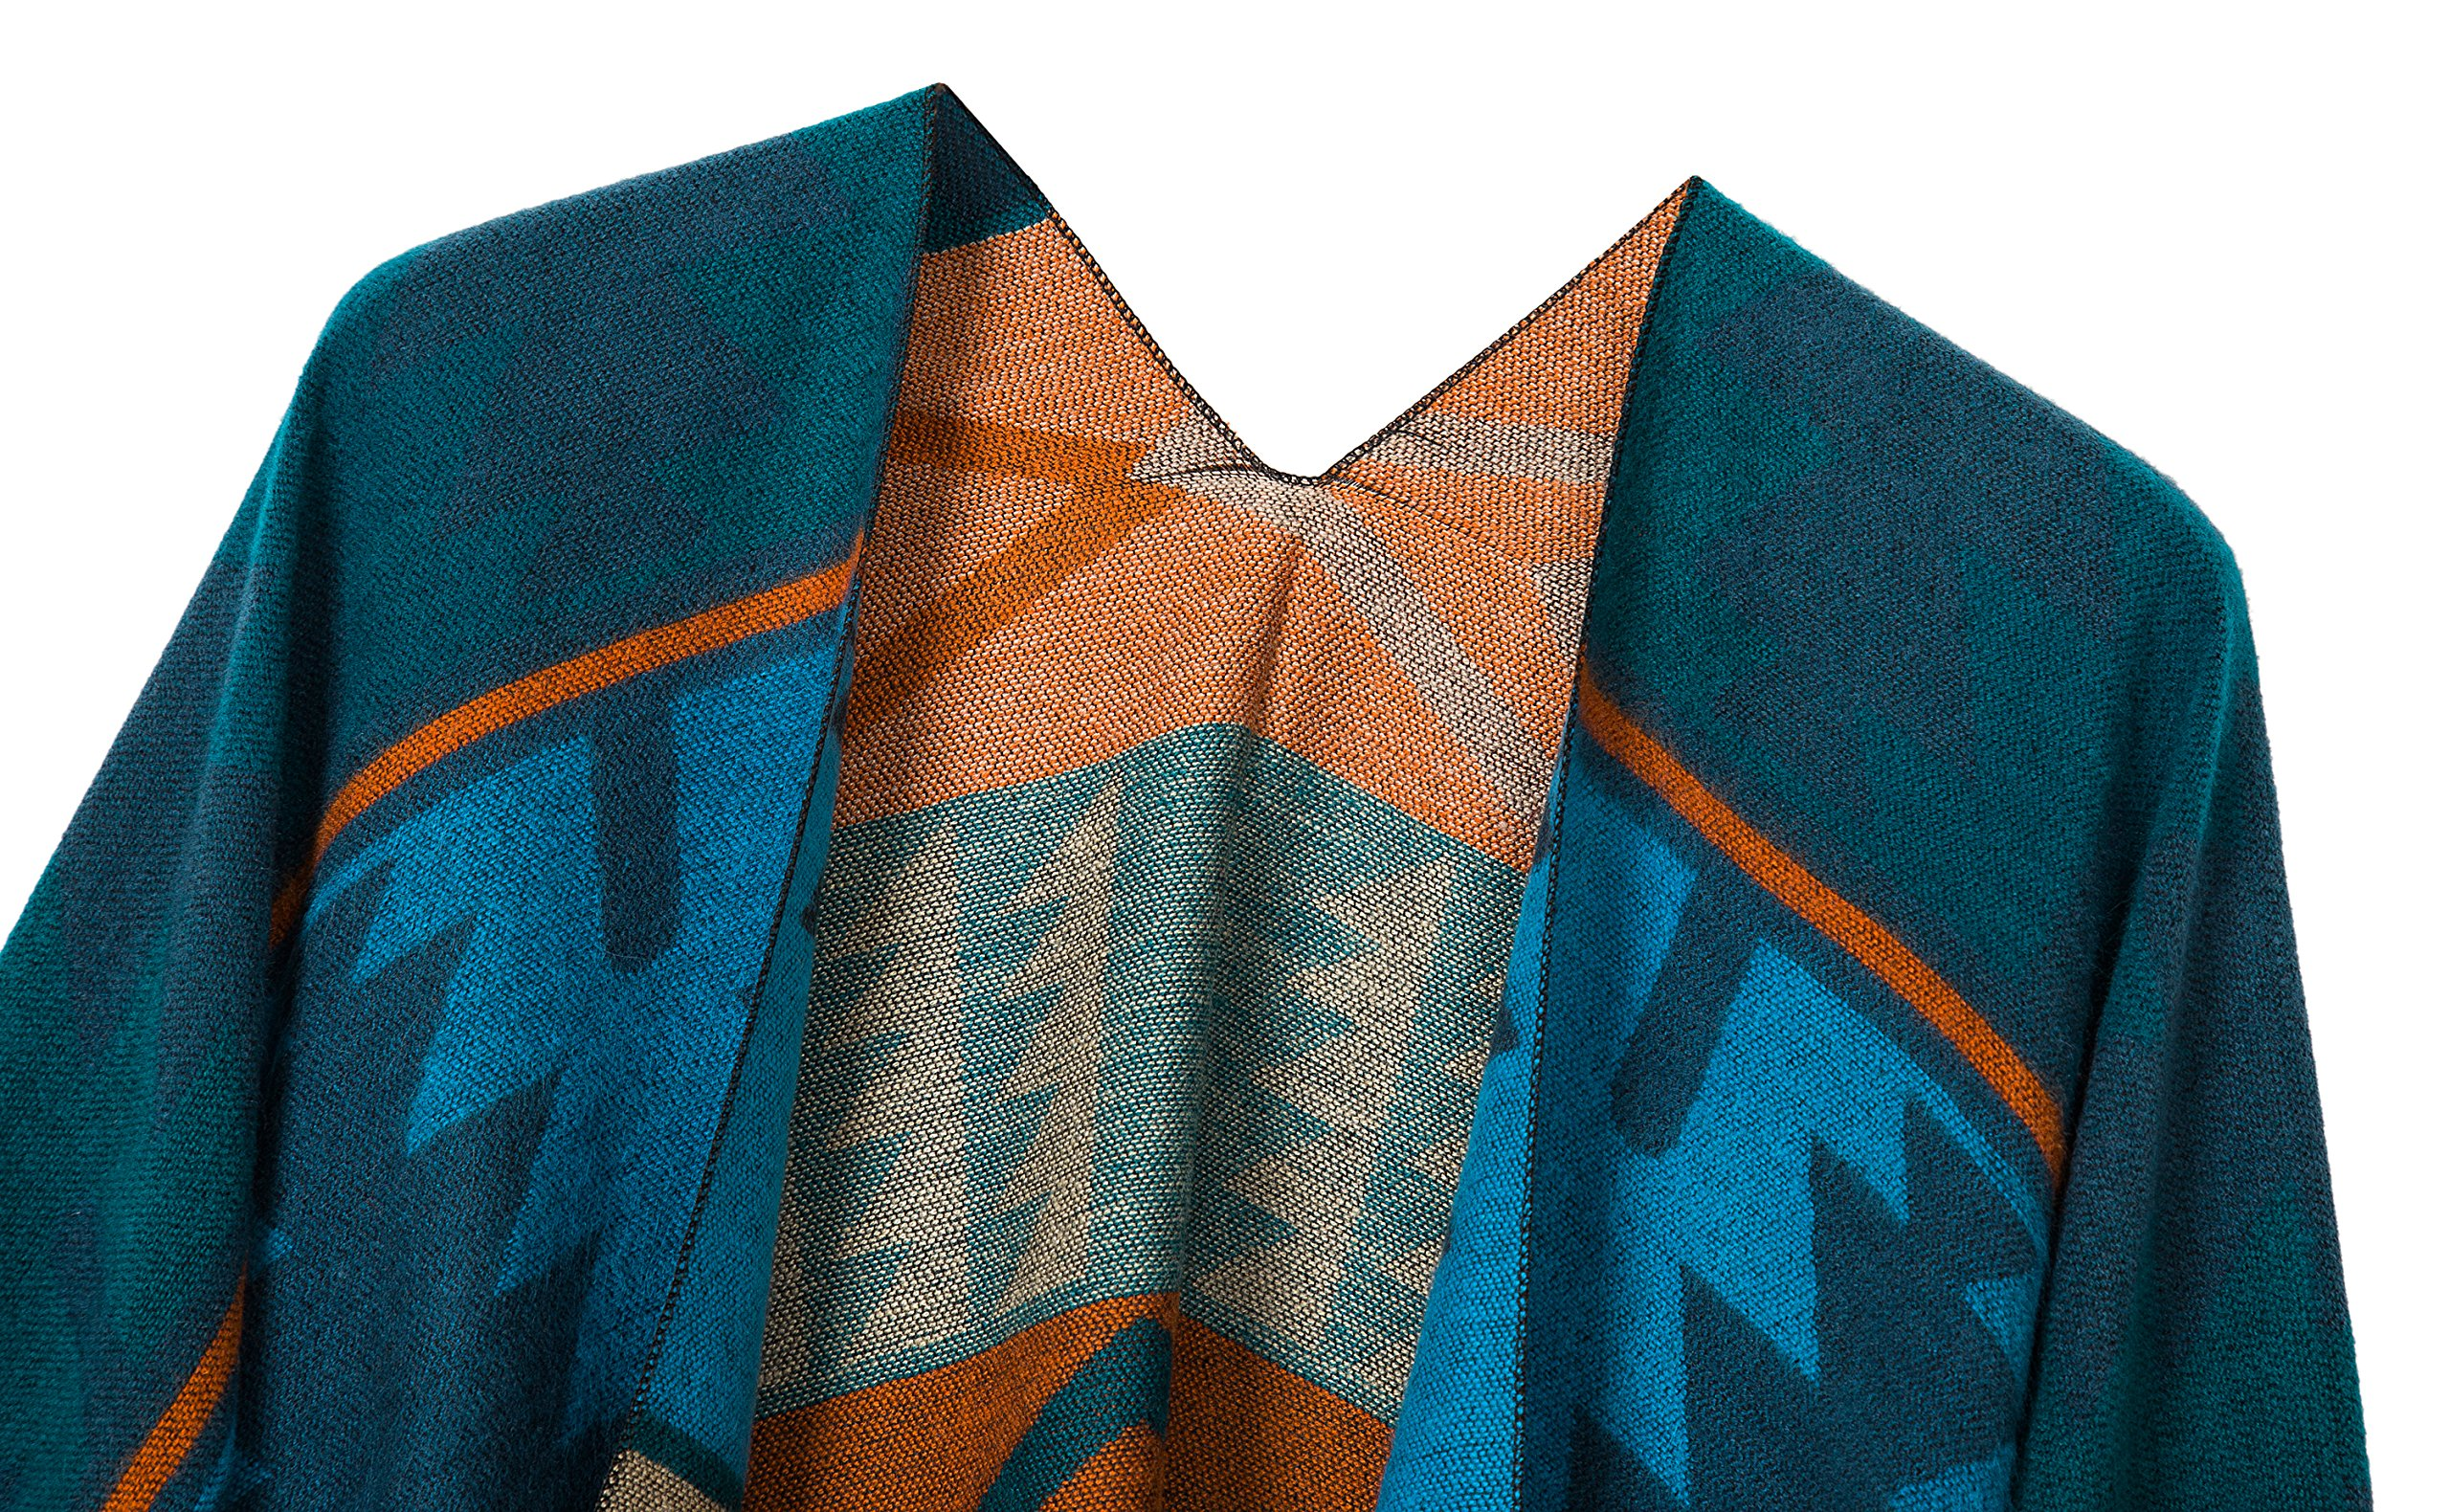 Urban CoCo Women's Printed Tassel Open front Poncho Cape Cardigan Wrap Shawl (Series 4-Blue) by Urban CoCo (Image #3)